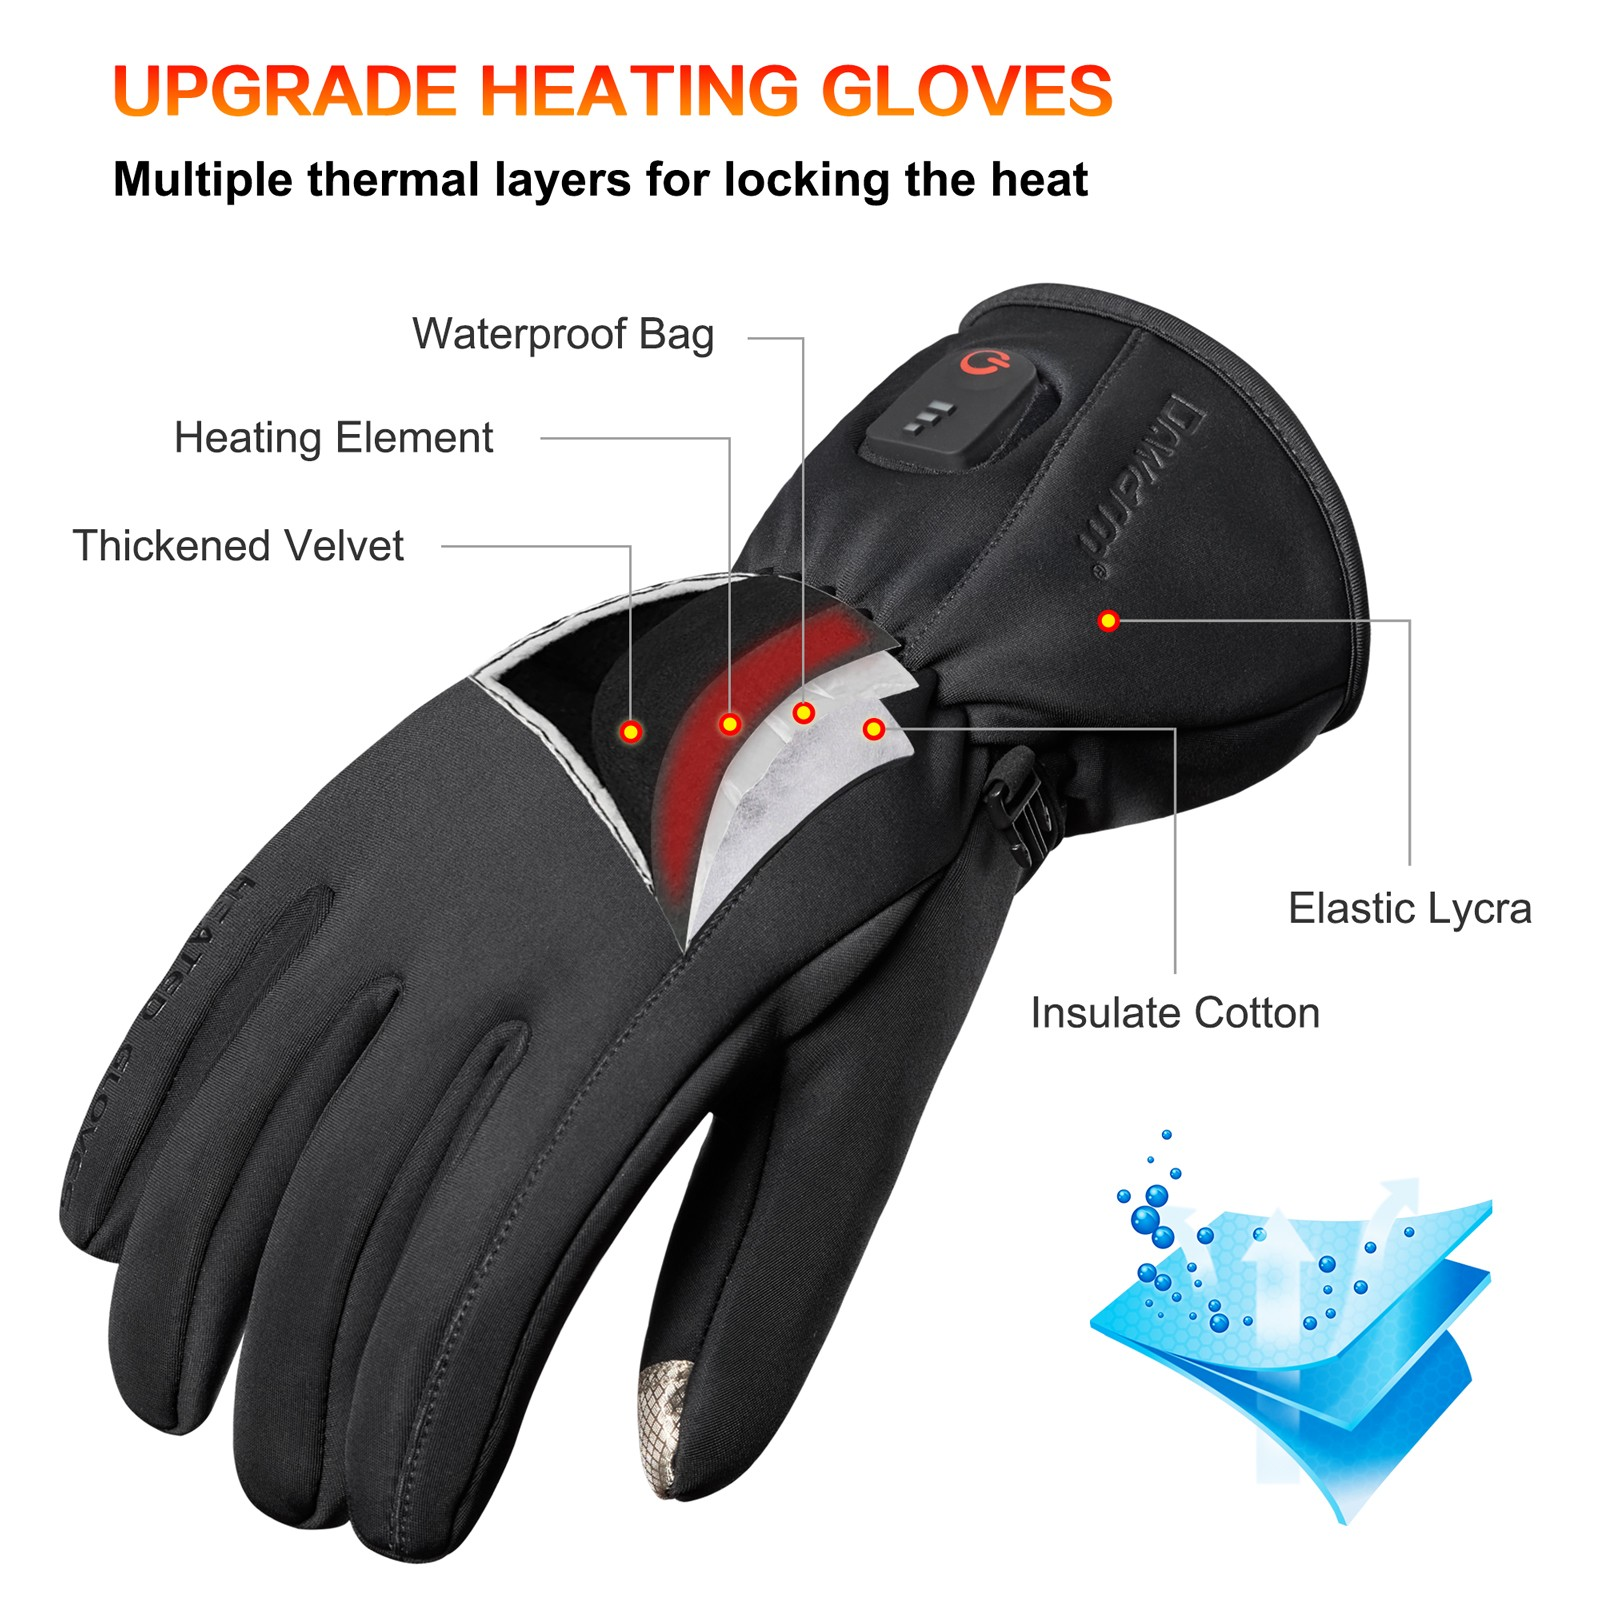 Dr. Warm winter electrical hand gloves for home-12